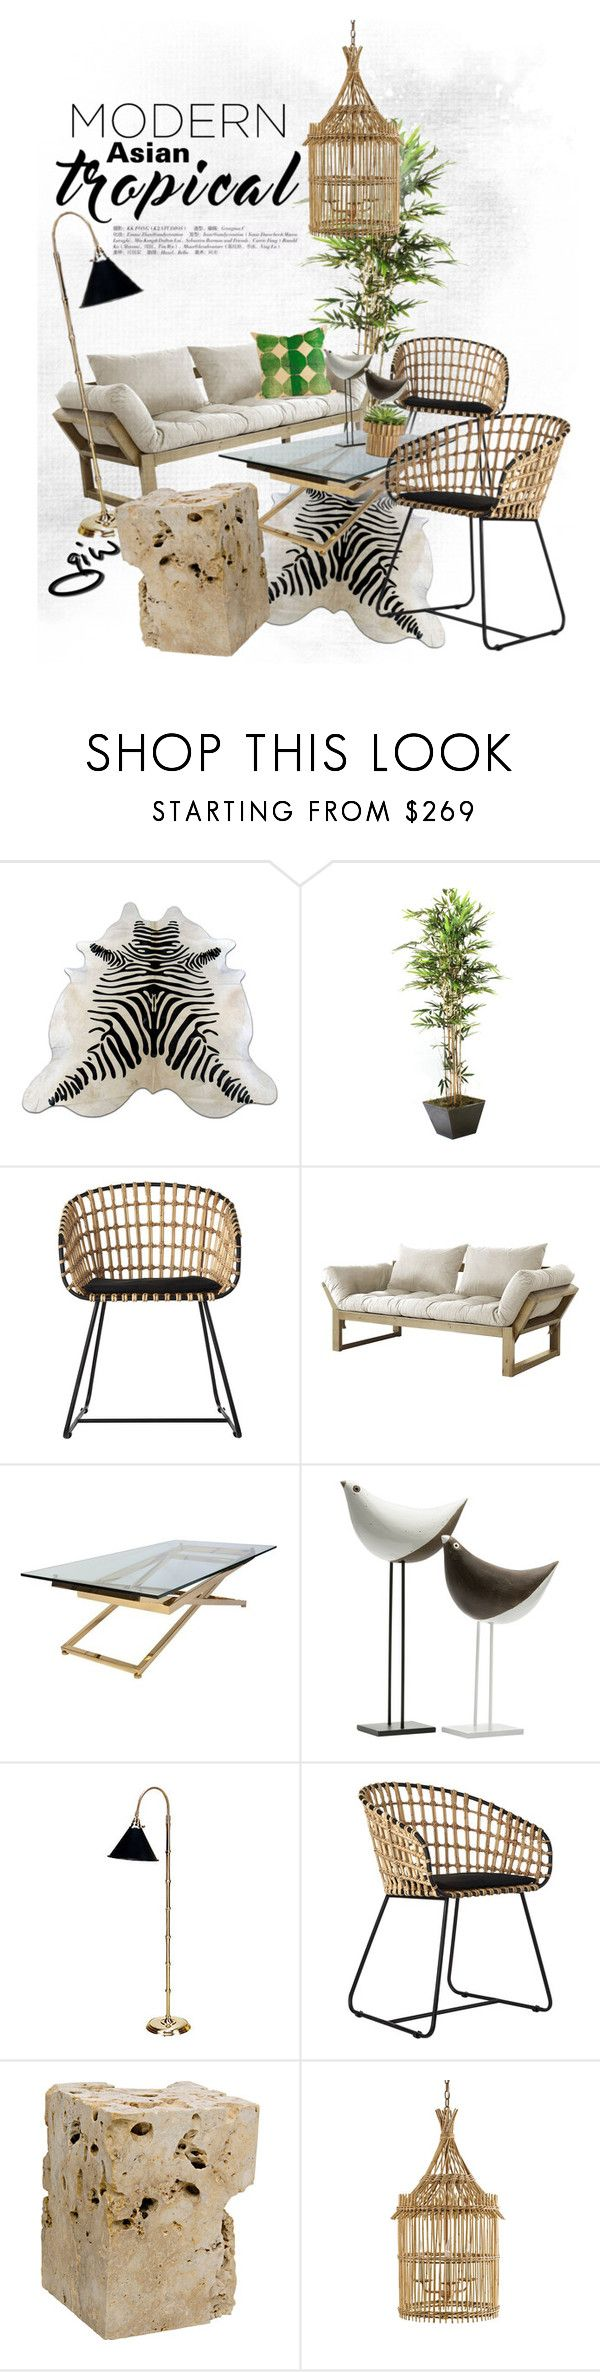 """""""modern asian...tropical..."""" by ian-giw ❤ liked on Polyvore featuring interior, interiors, interior design, home, home decor, interior decorating, Pols Potten, Fresh Futon, Bitossi and nOir"""